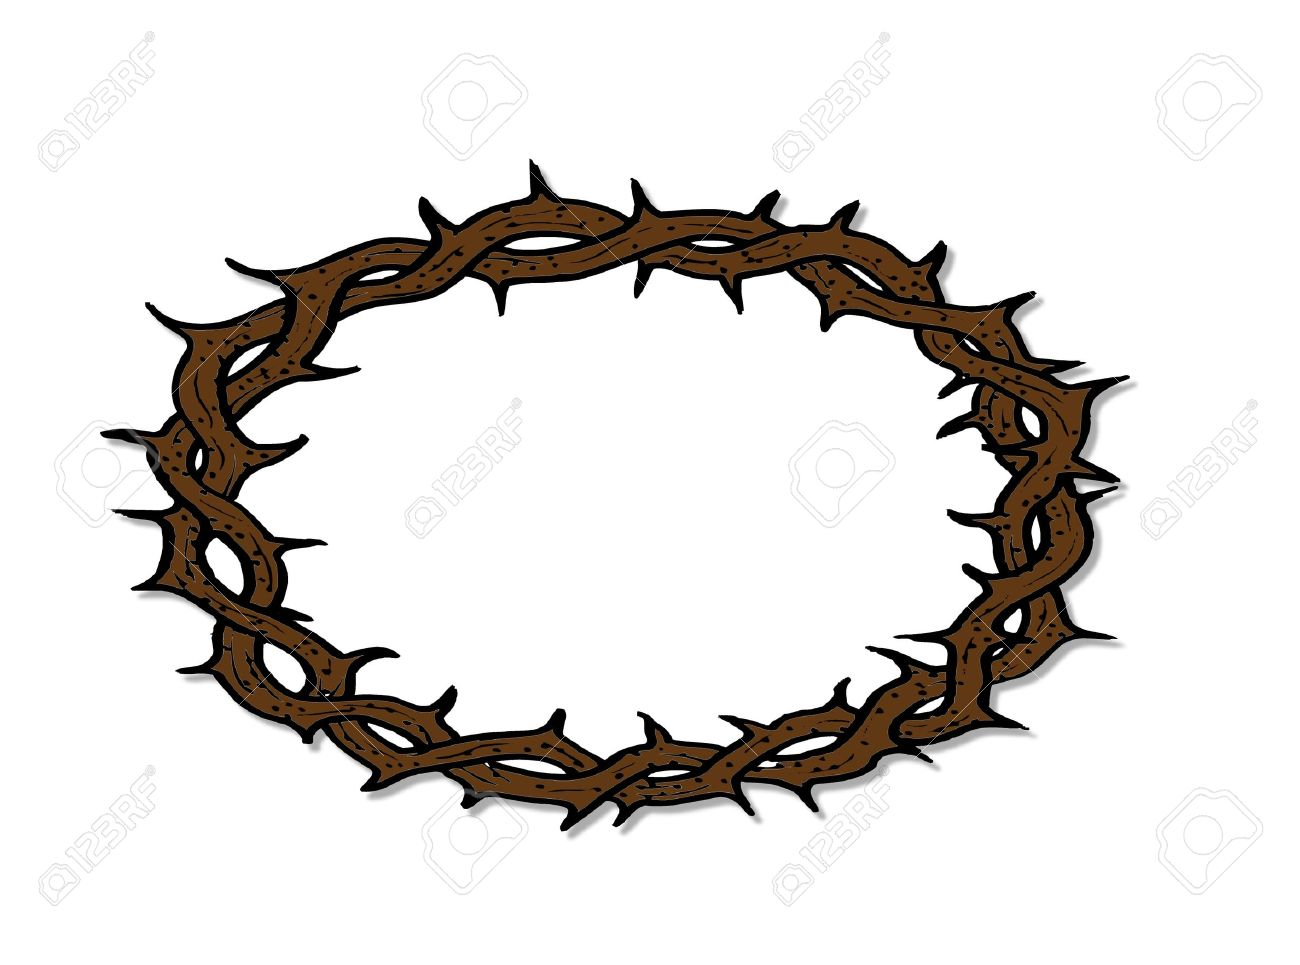 crown of thorns royalty free cliparts vectors and stock rh 123rf com jesus crown of thorns clipart crown of thorns clipart black and white